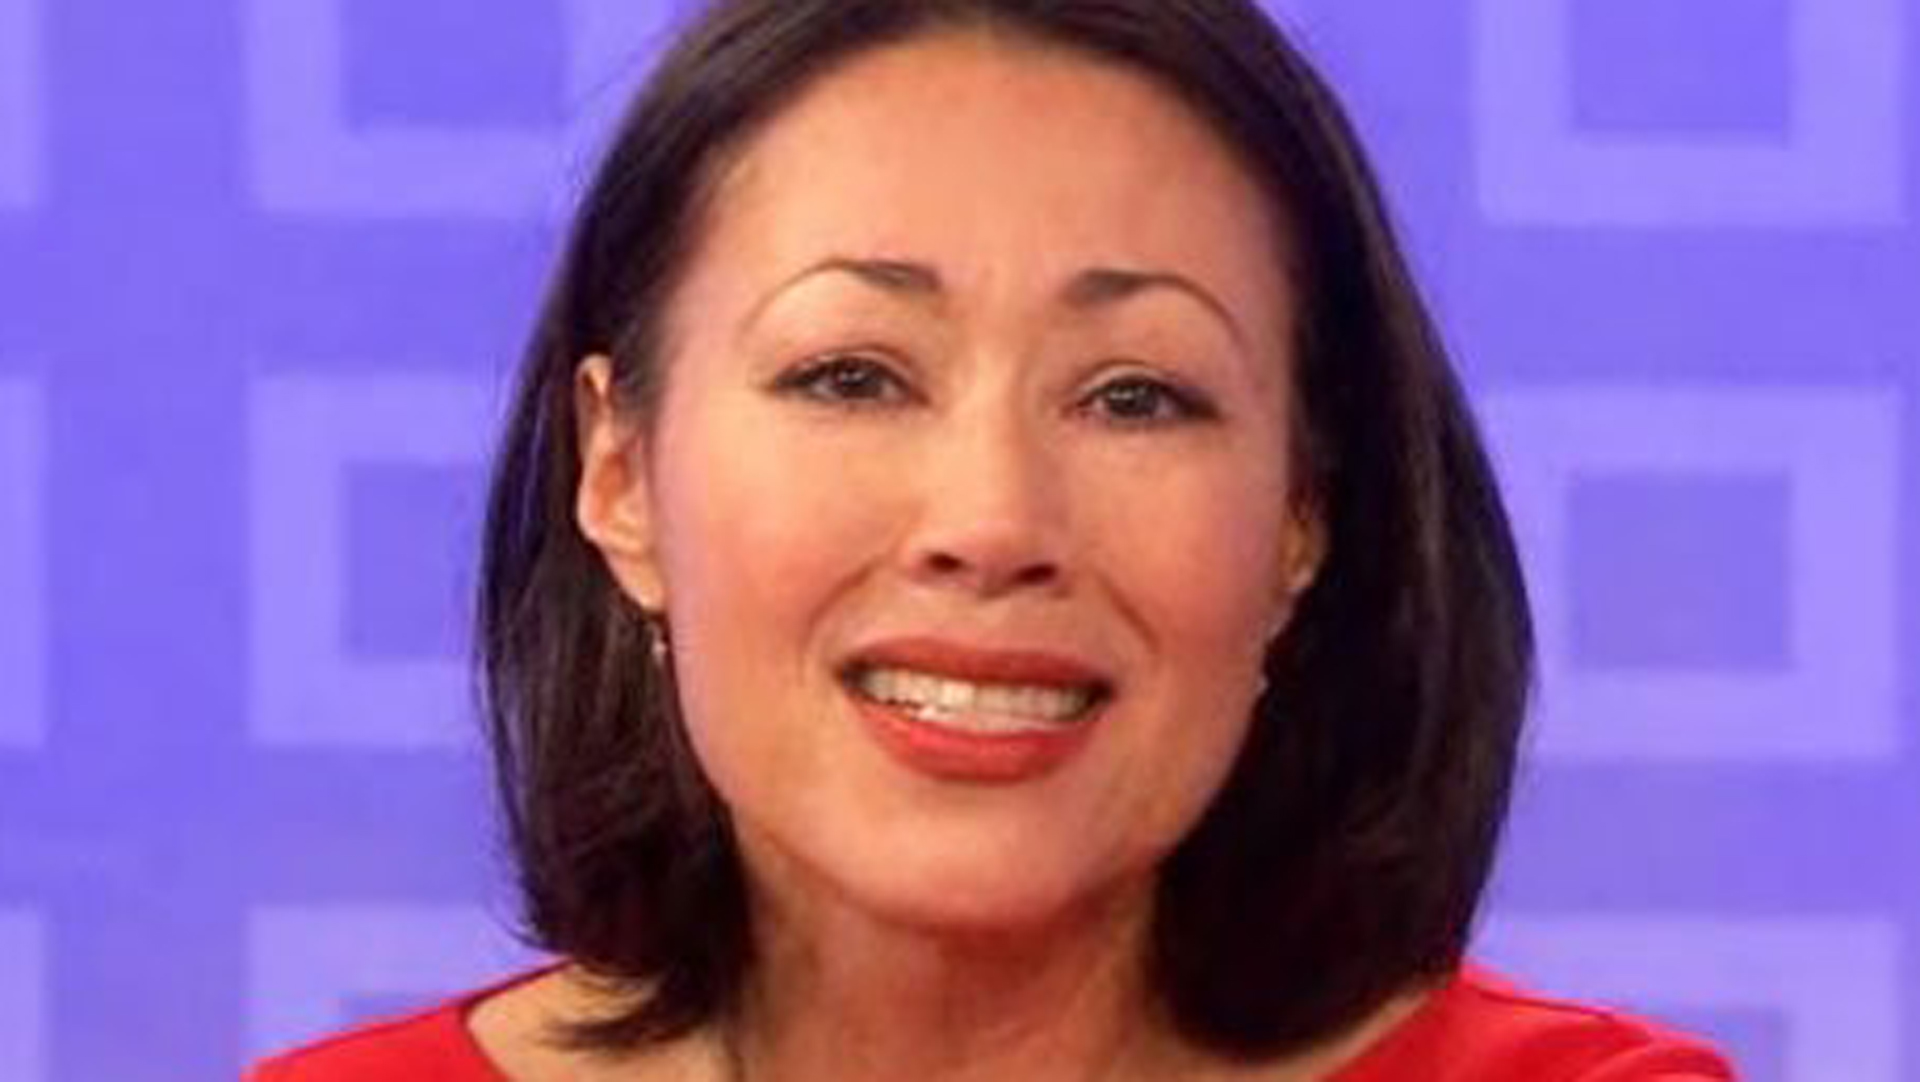 Scandals that brought down famous news anchors